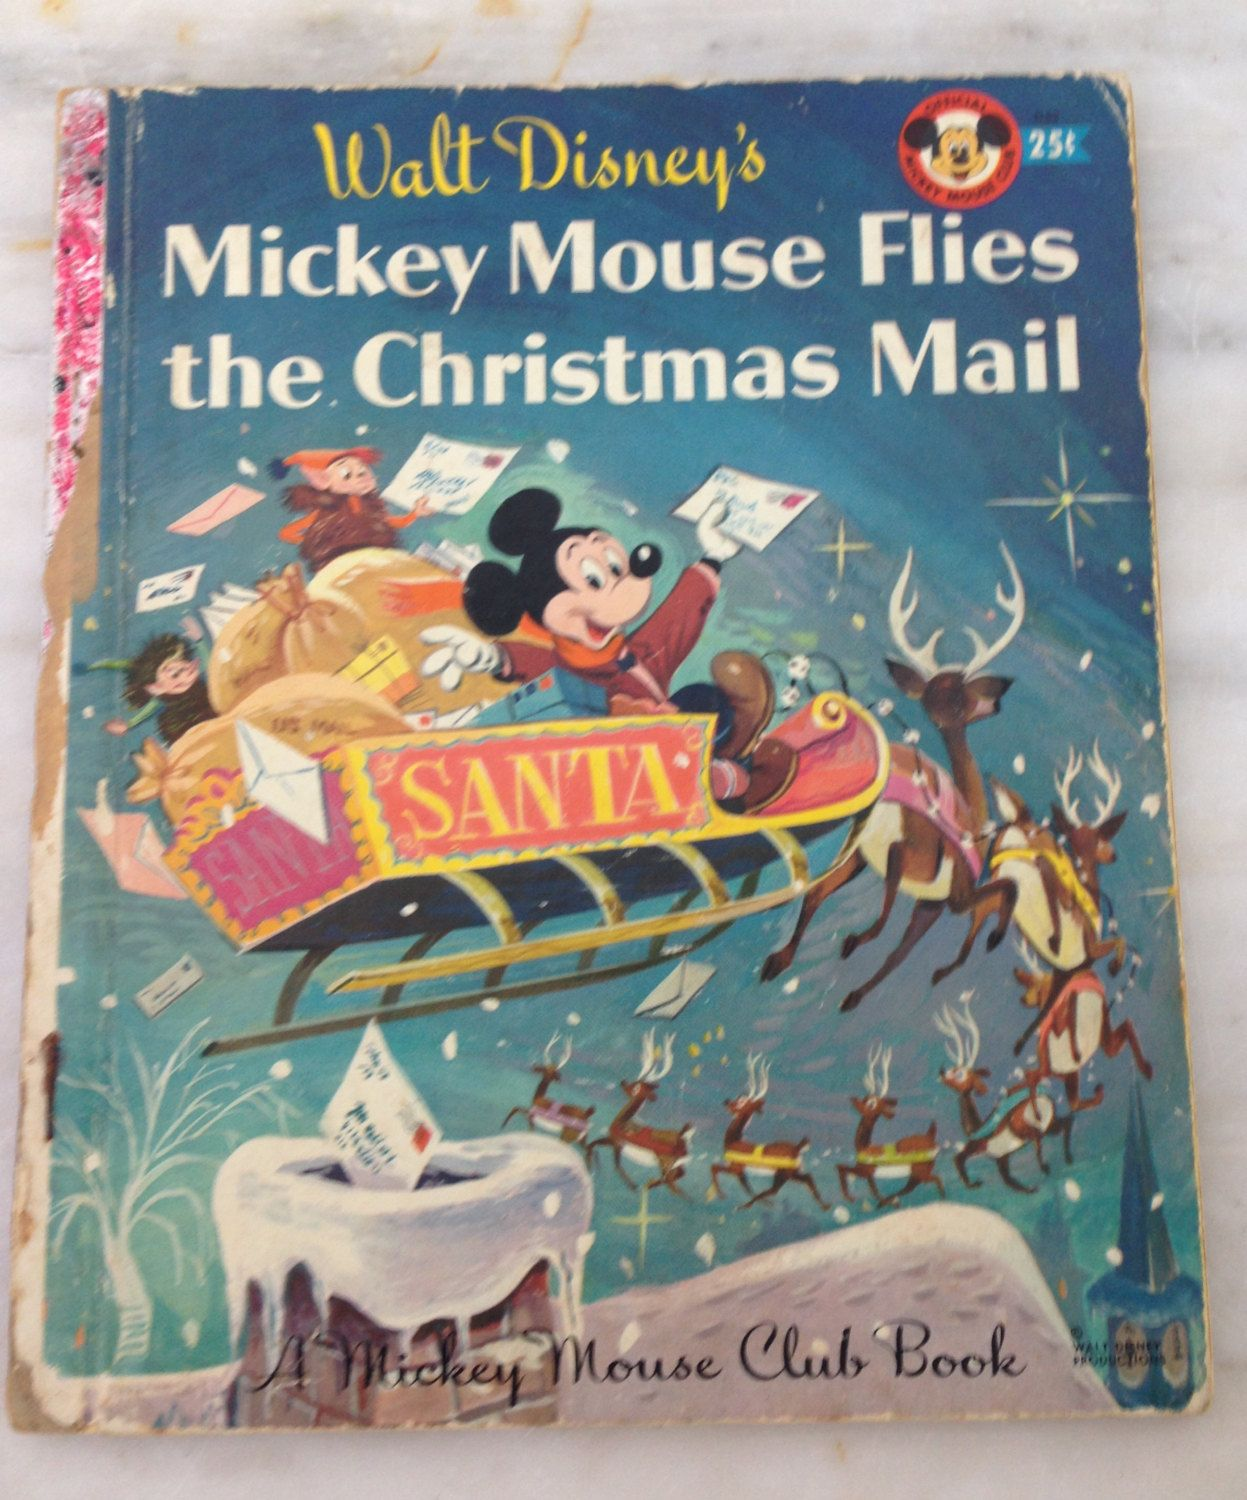 vintage Mickey Mouse Club Book Mickey Mouse Flies the Christmas Mail Walt  Disney 1956A edition by MotherMuse on Etsy